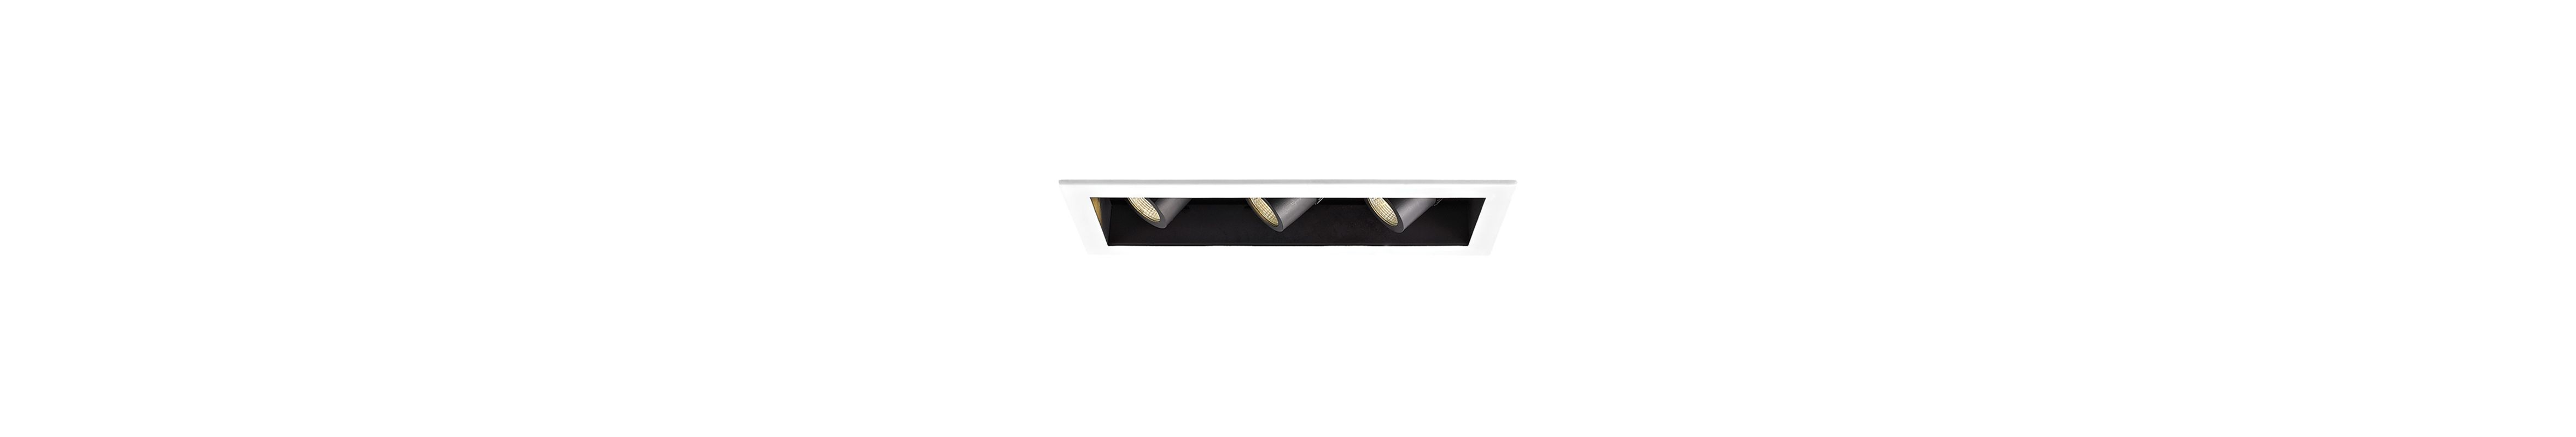 "WAC Lighting MT-4LD316N-S27 4"" Trim 2700K High Output LED Recessed"